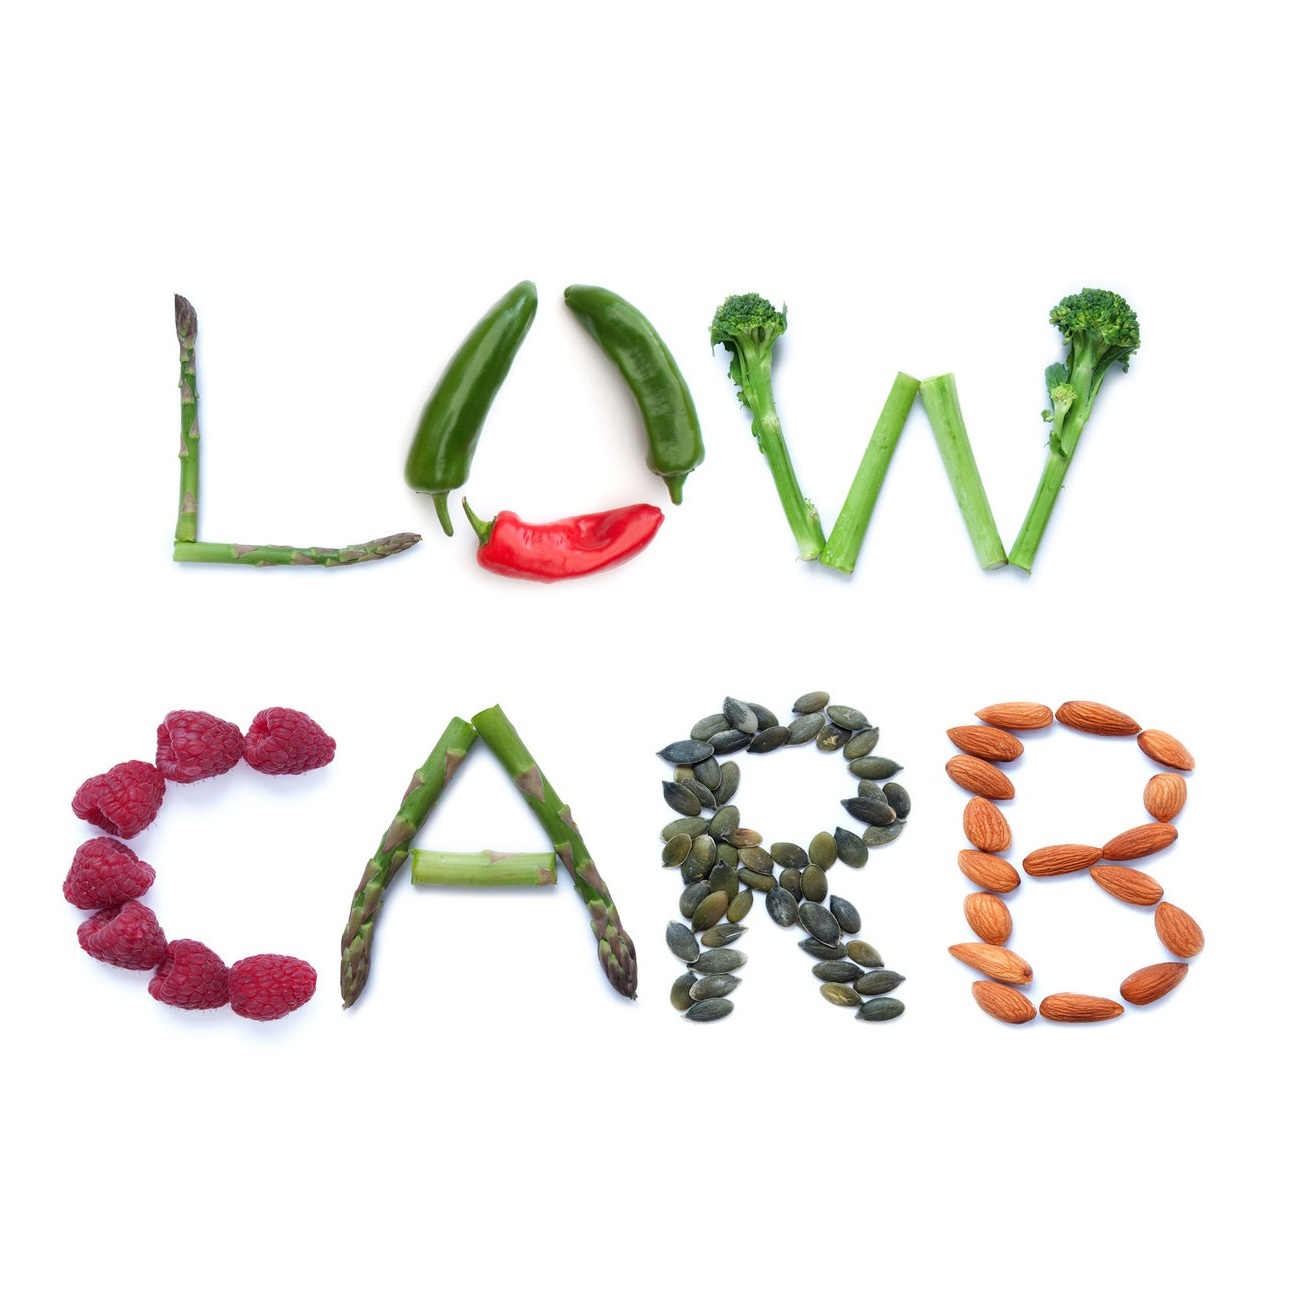 What Are The Benefits Of Eating Low Carb? -